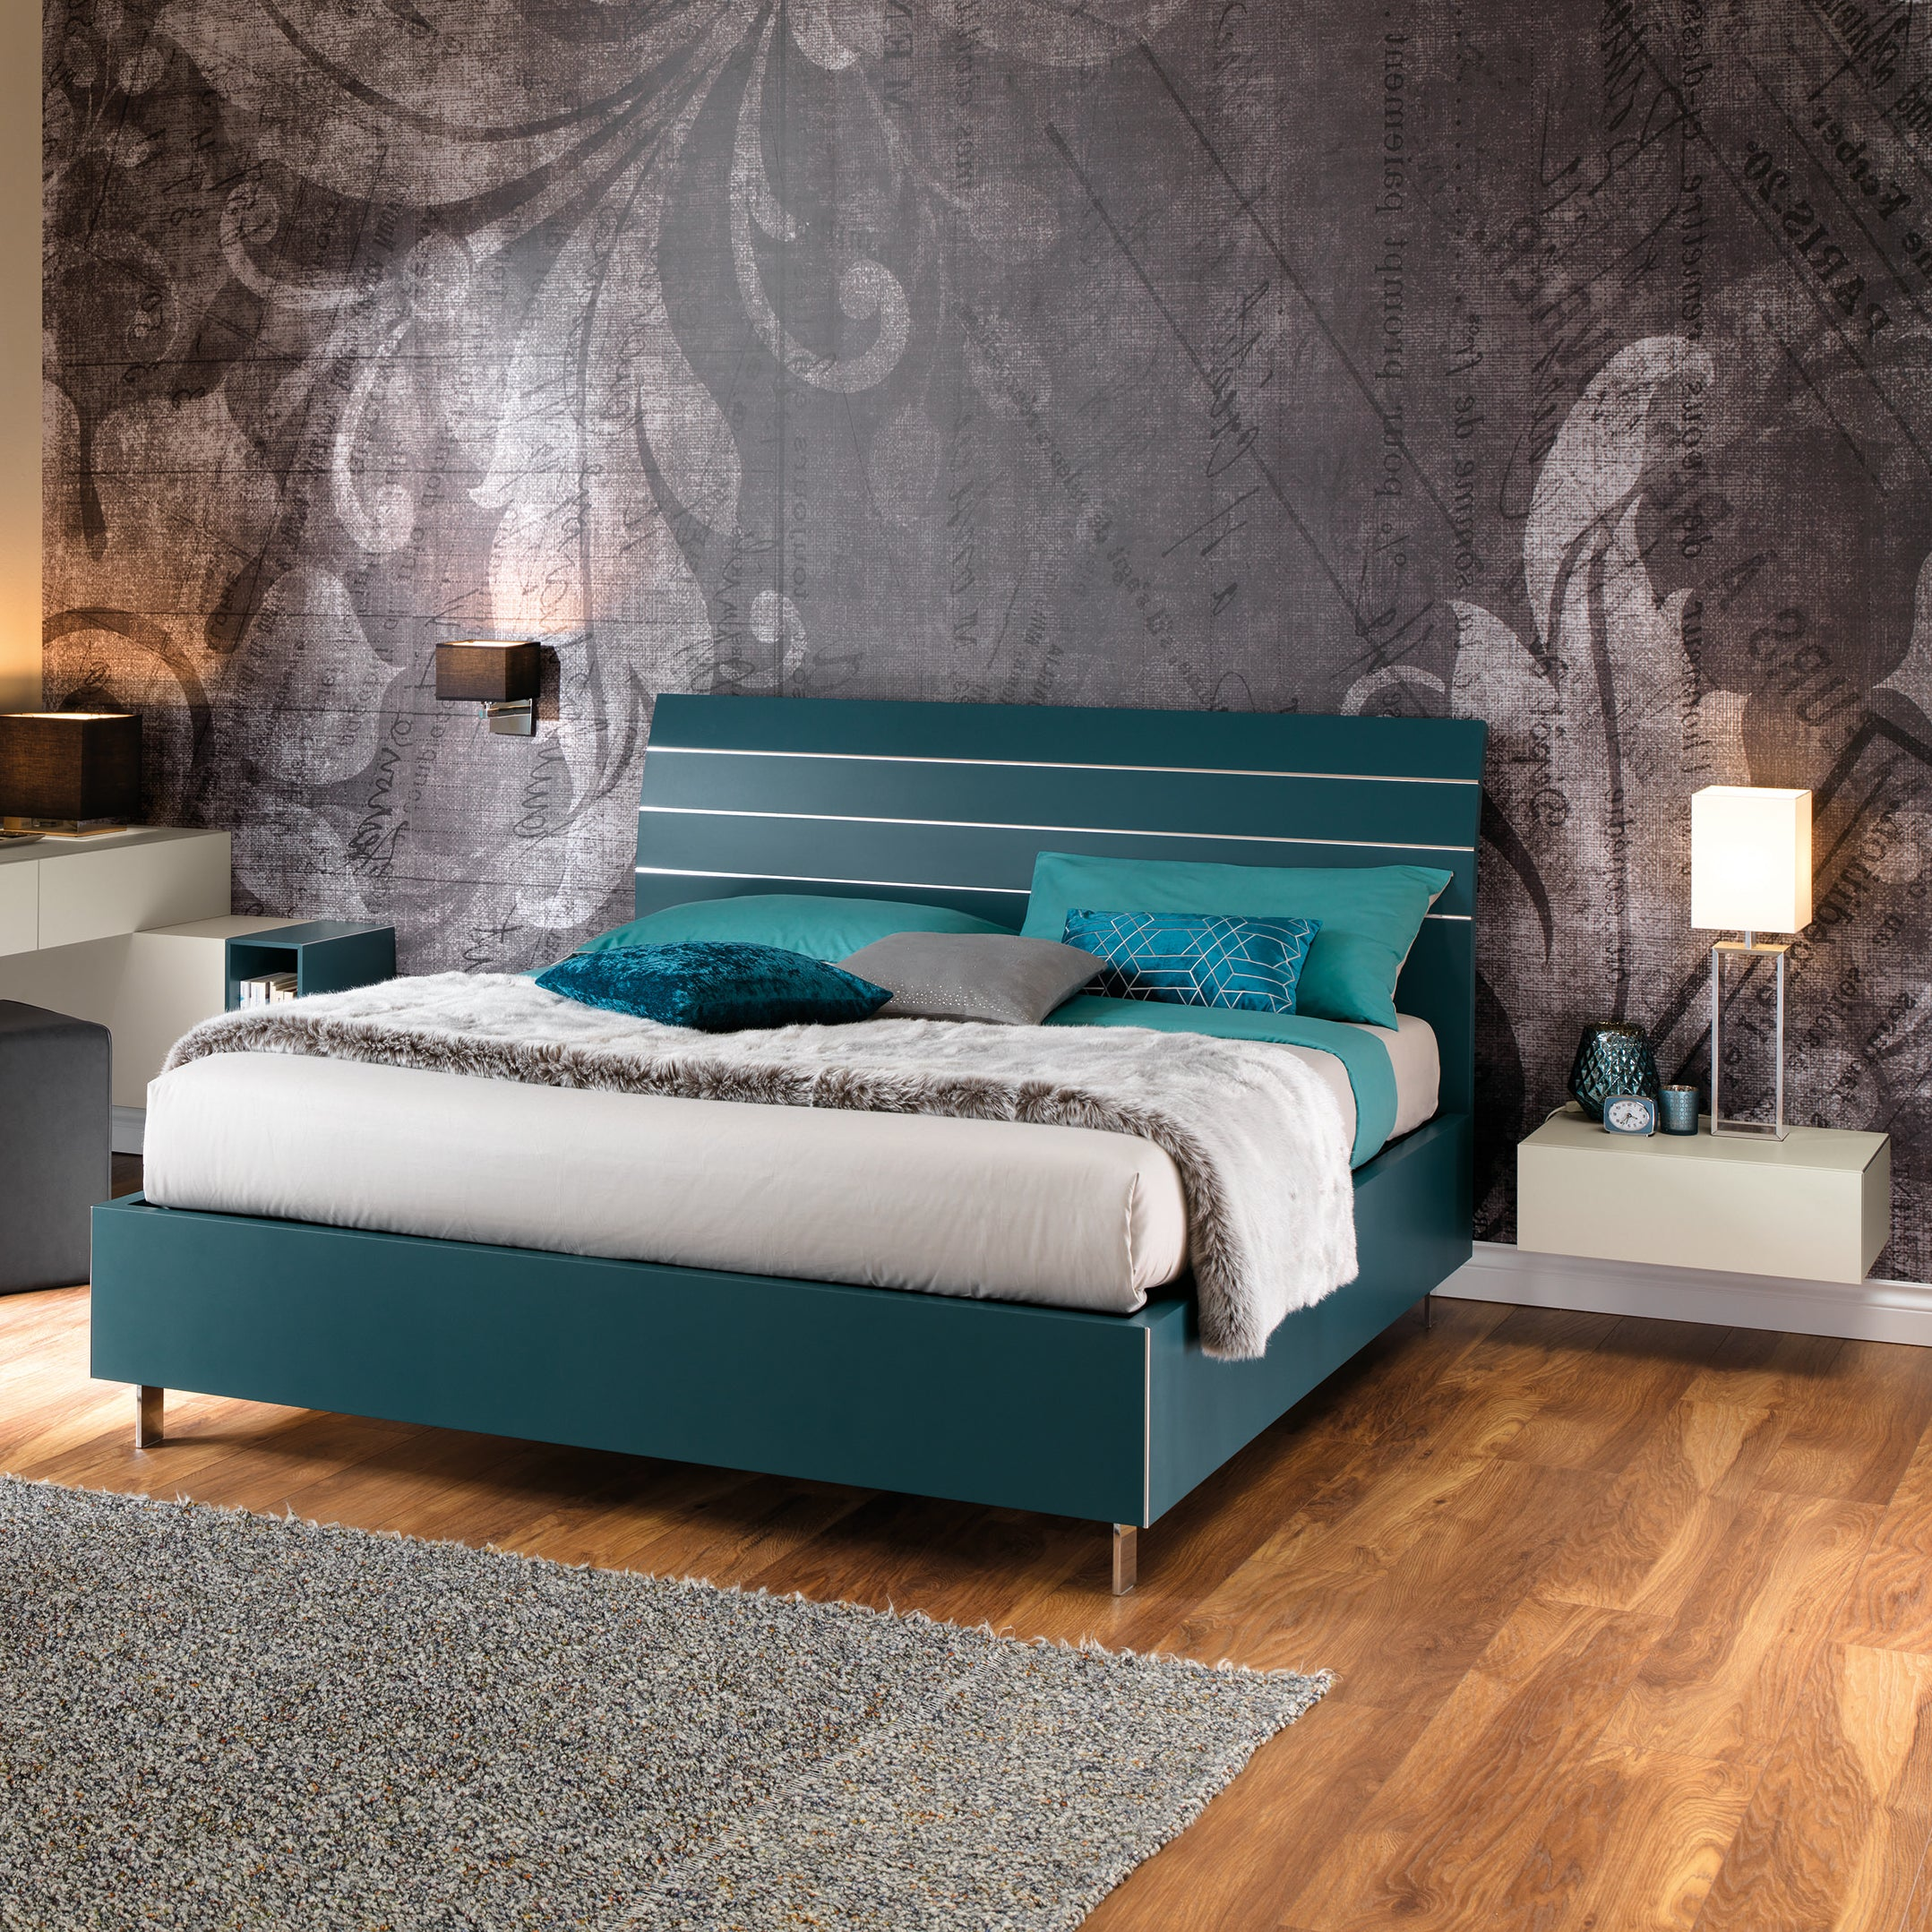 Slumberstore Curve Storage Bed With Stylish Wood Headboard Spaceman Innovations Pte Ltd